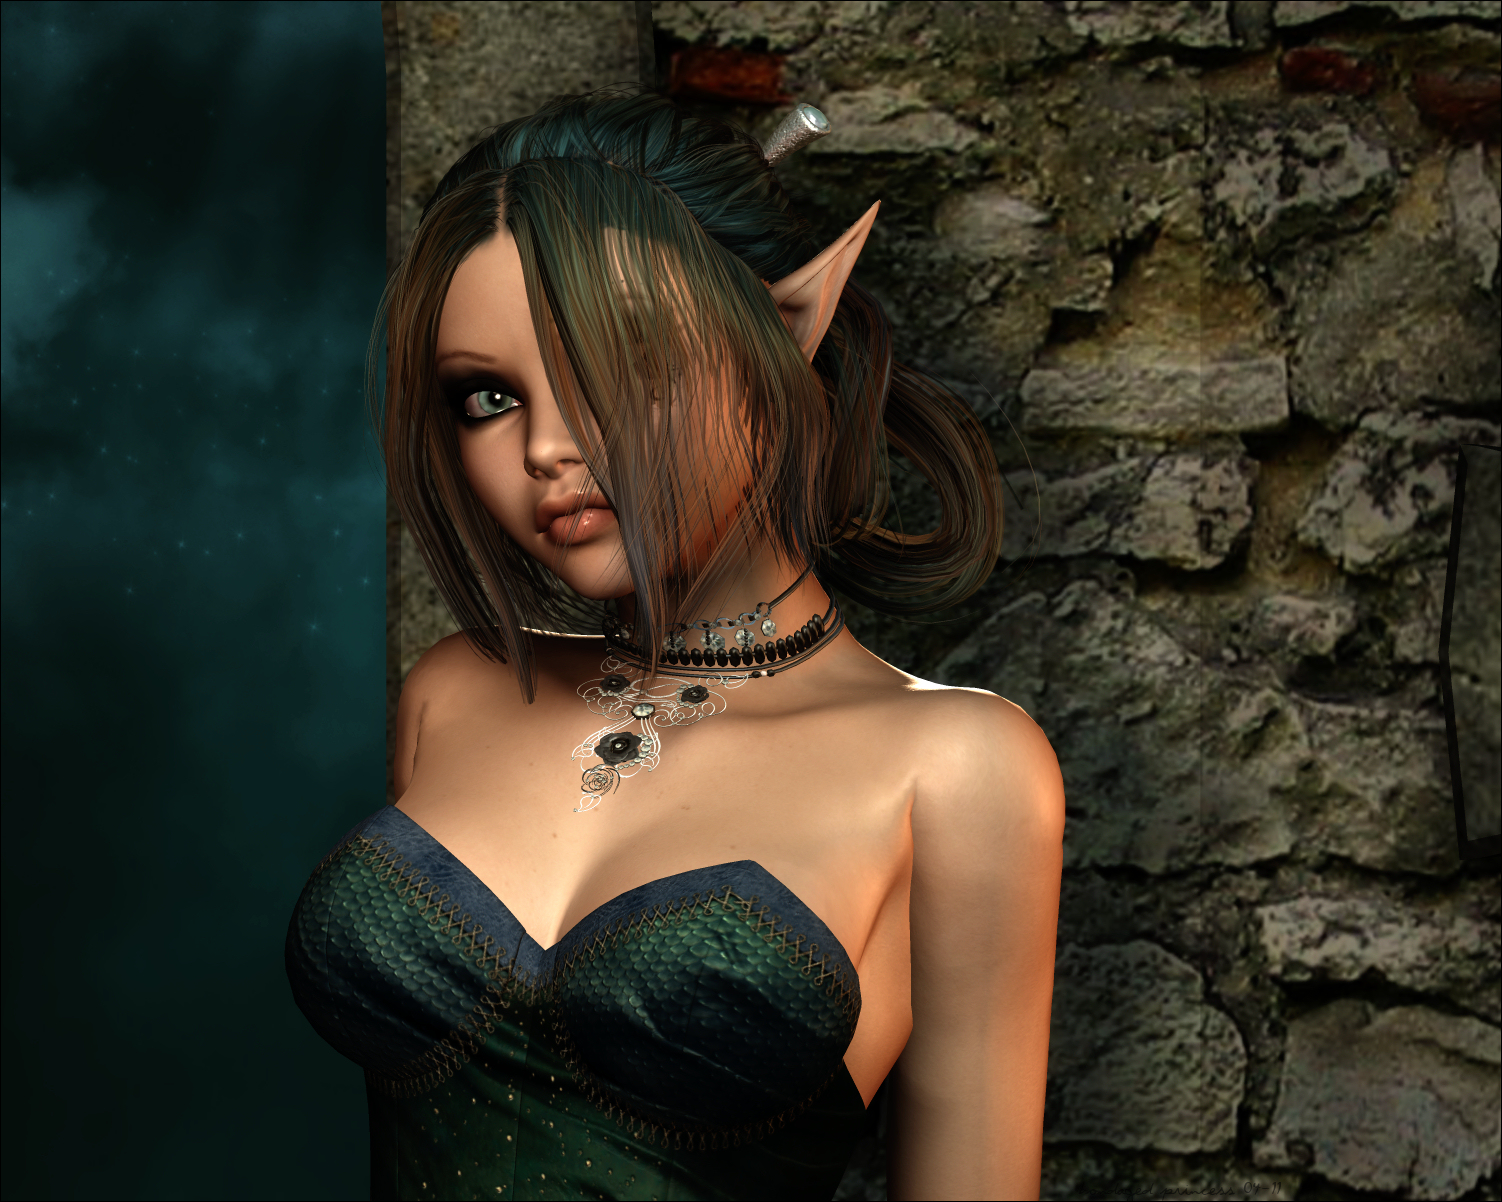 Captured elf girl nackt gallery